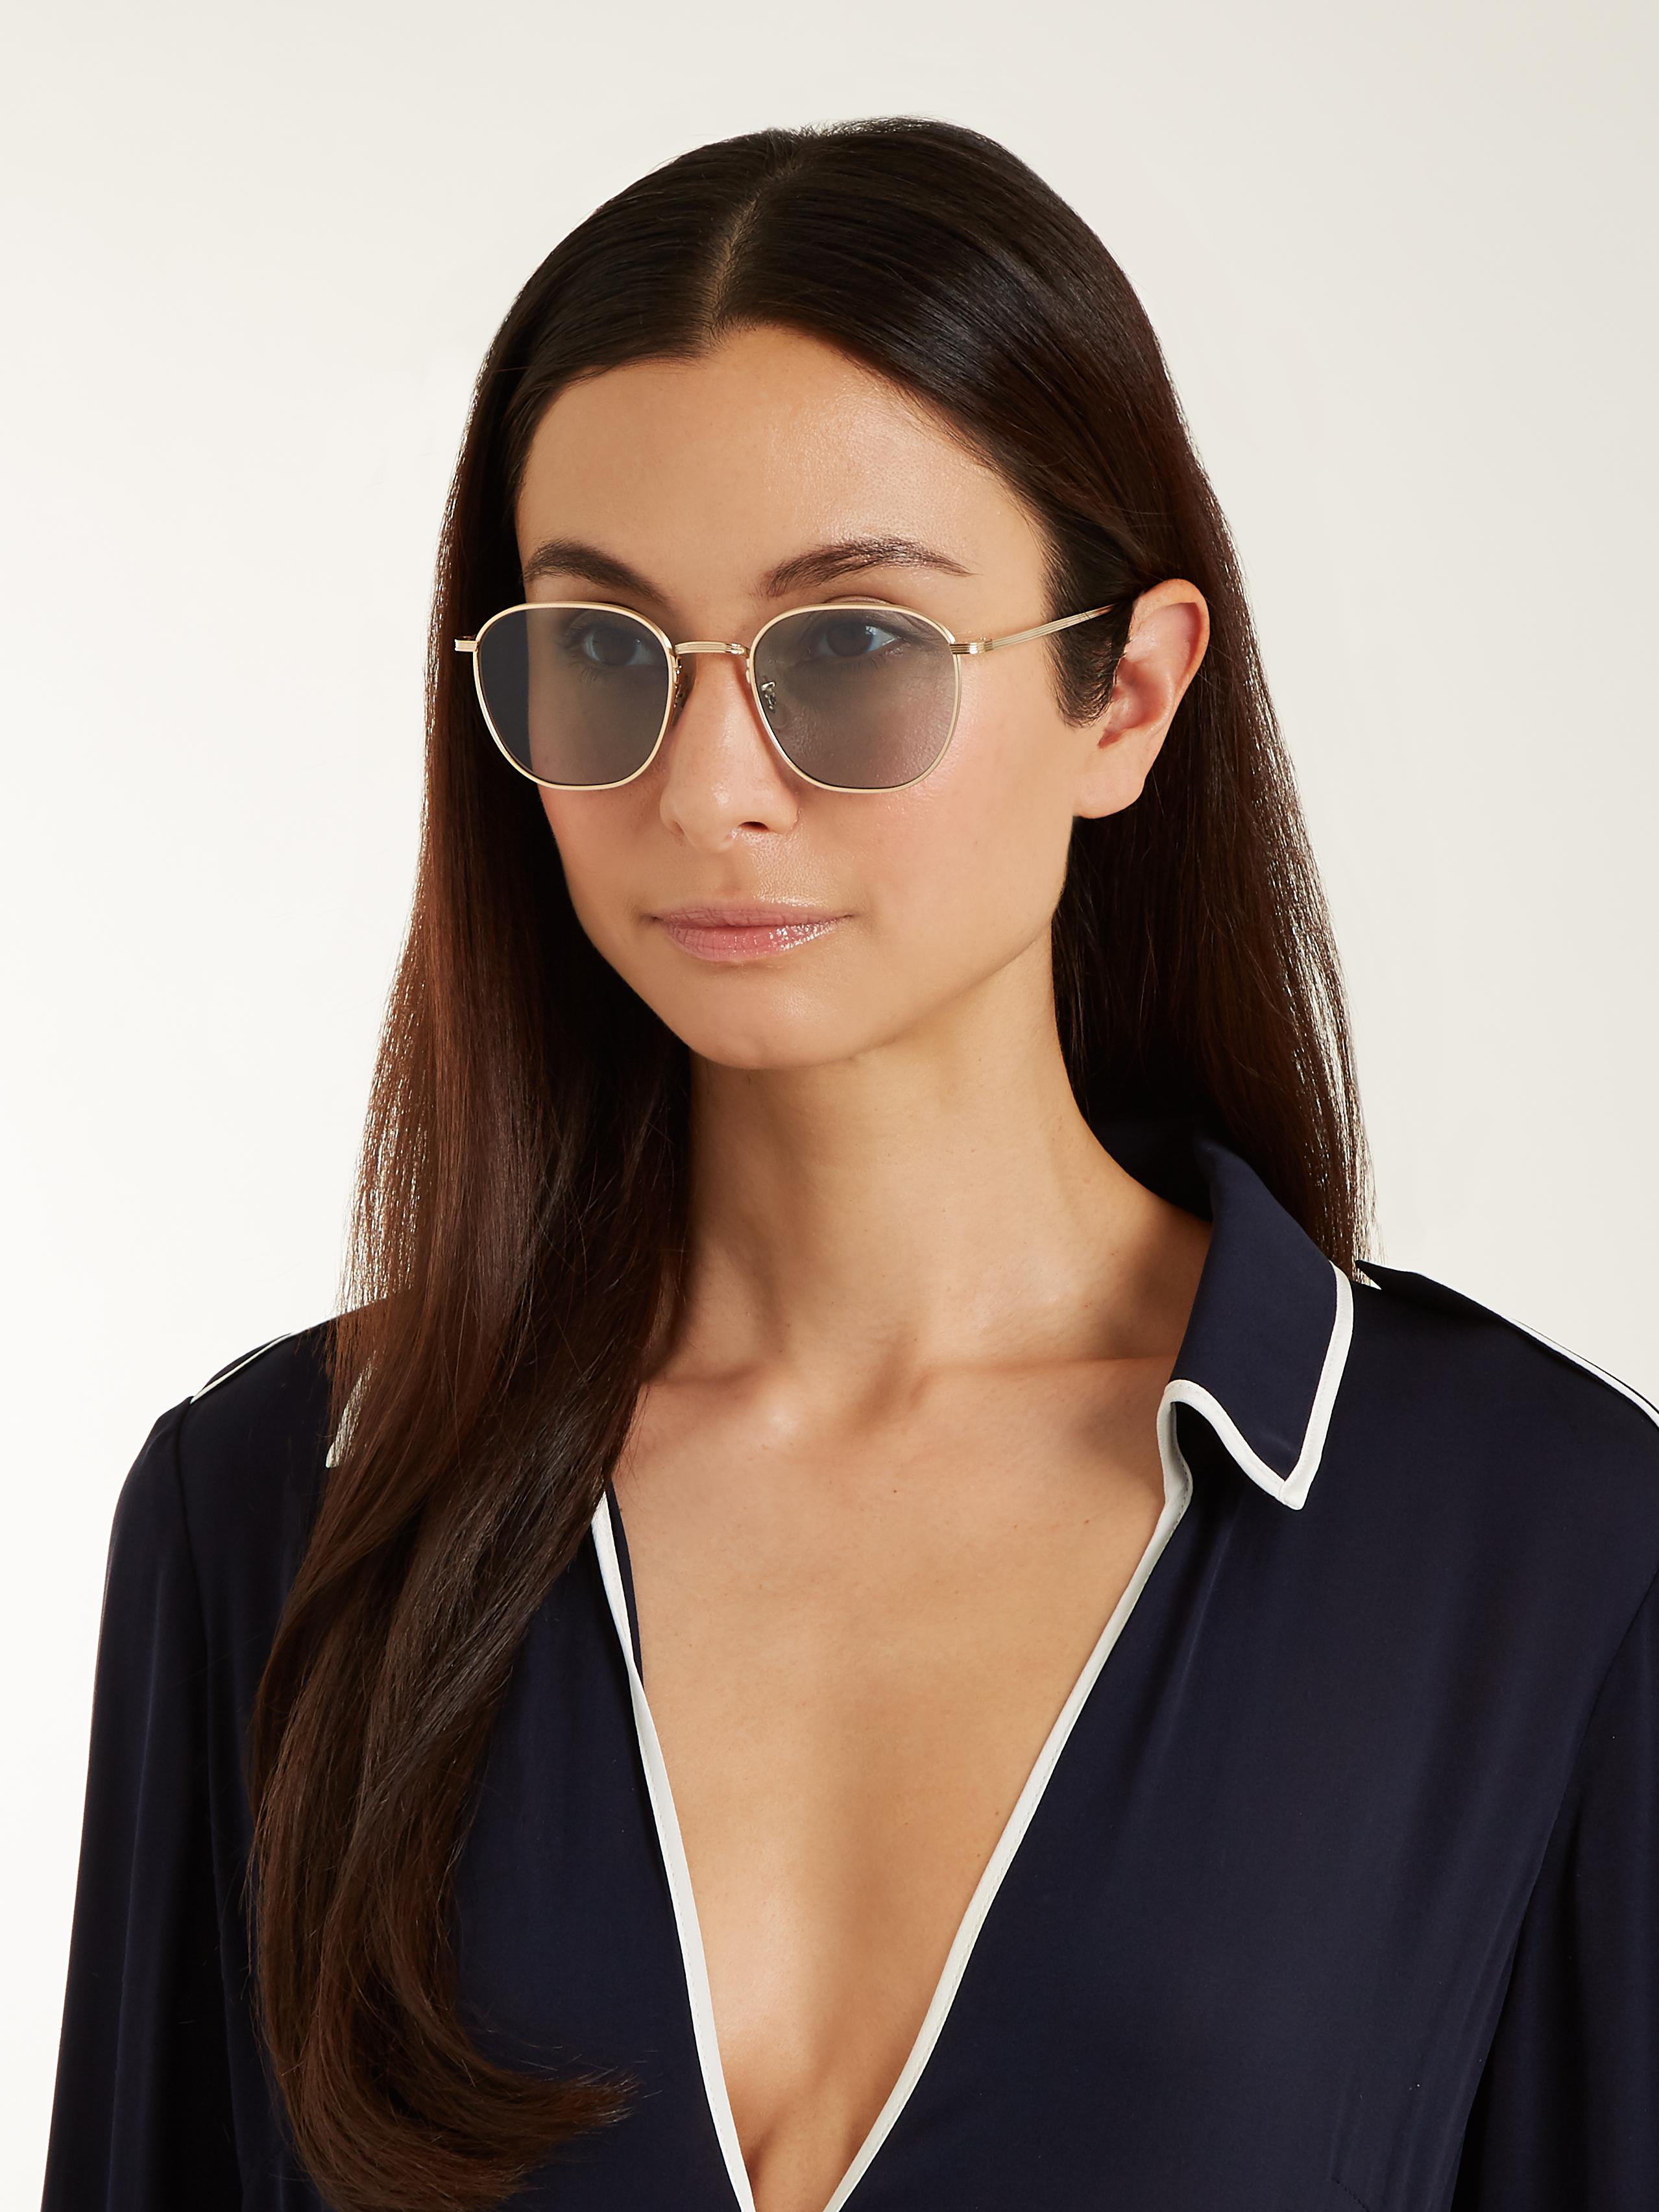 411b94bb02b Lyst - The Row X Oliver Peoples Board Meeting 2 Sunglasses in Metallic